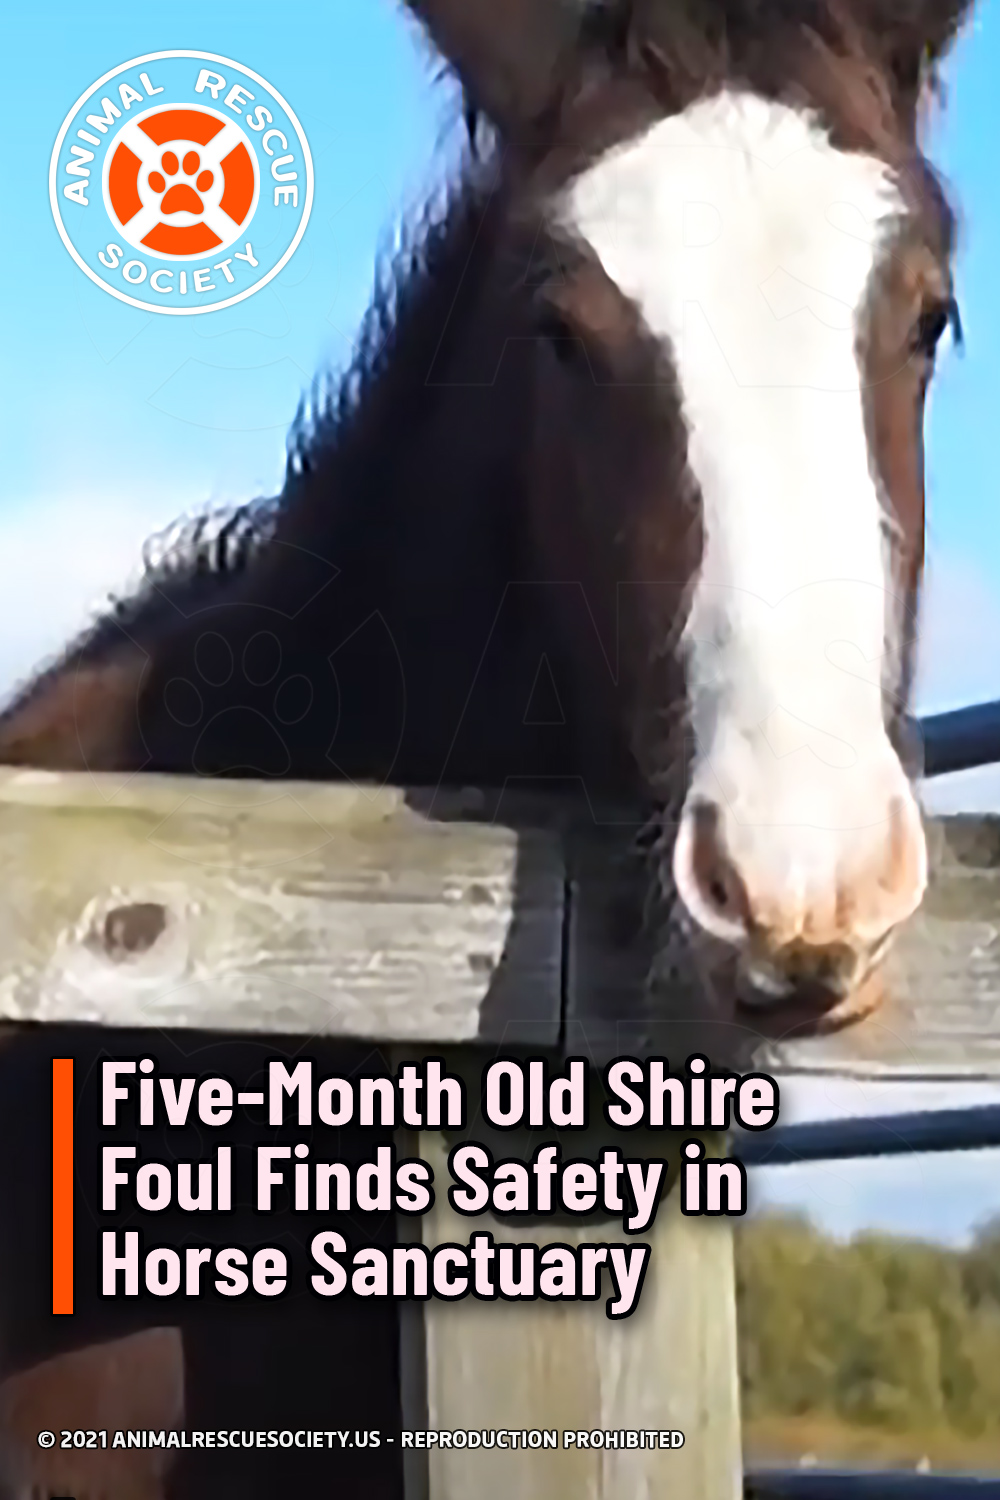 Five-Month Old Shire Foul Finds Safety in Horse Sanctuary